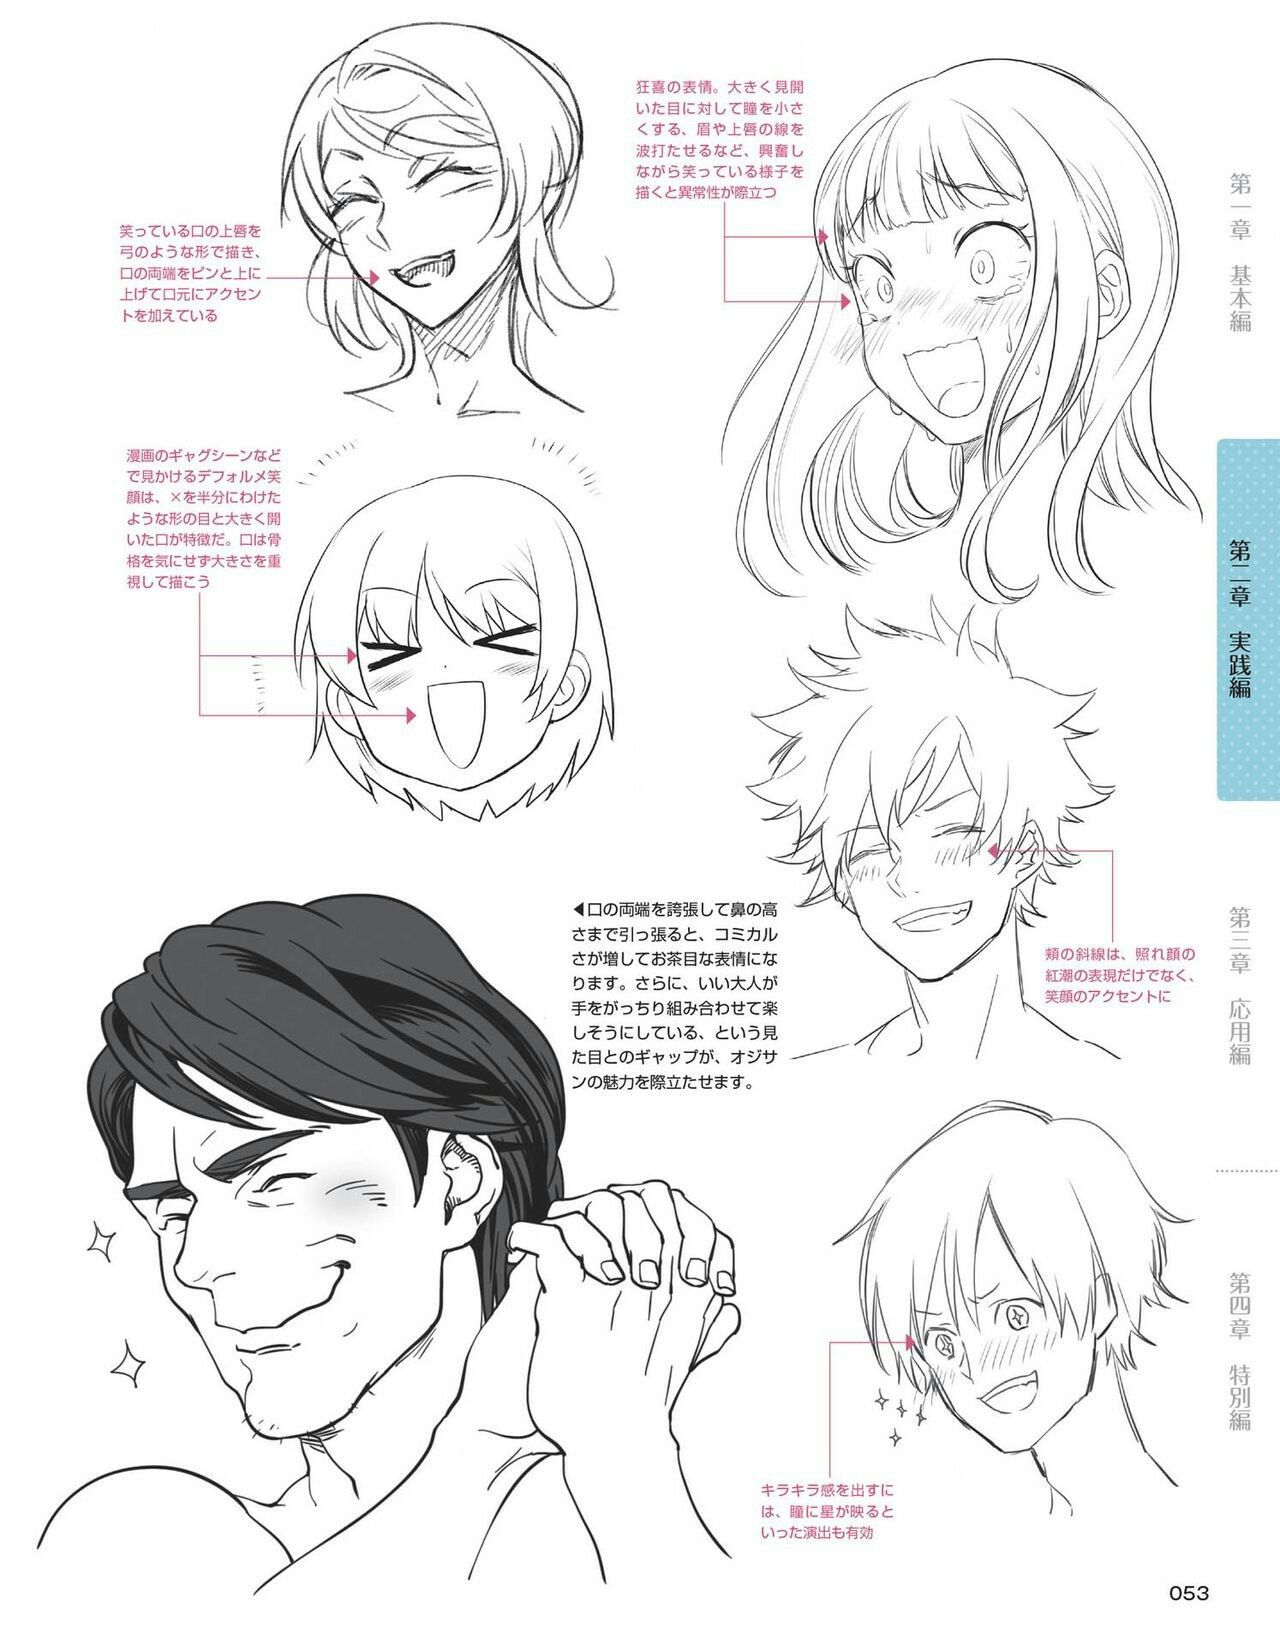 Pin by Kyo Yuei 霂嶽 on Face Reaction (With images) Manga